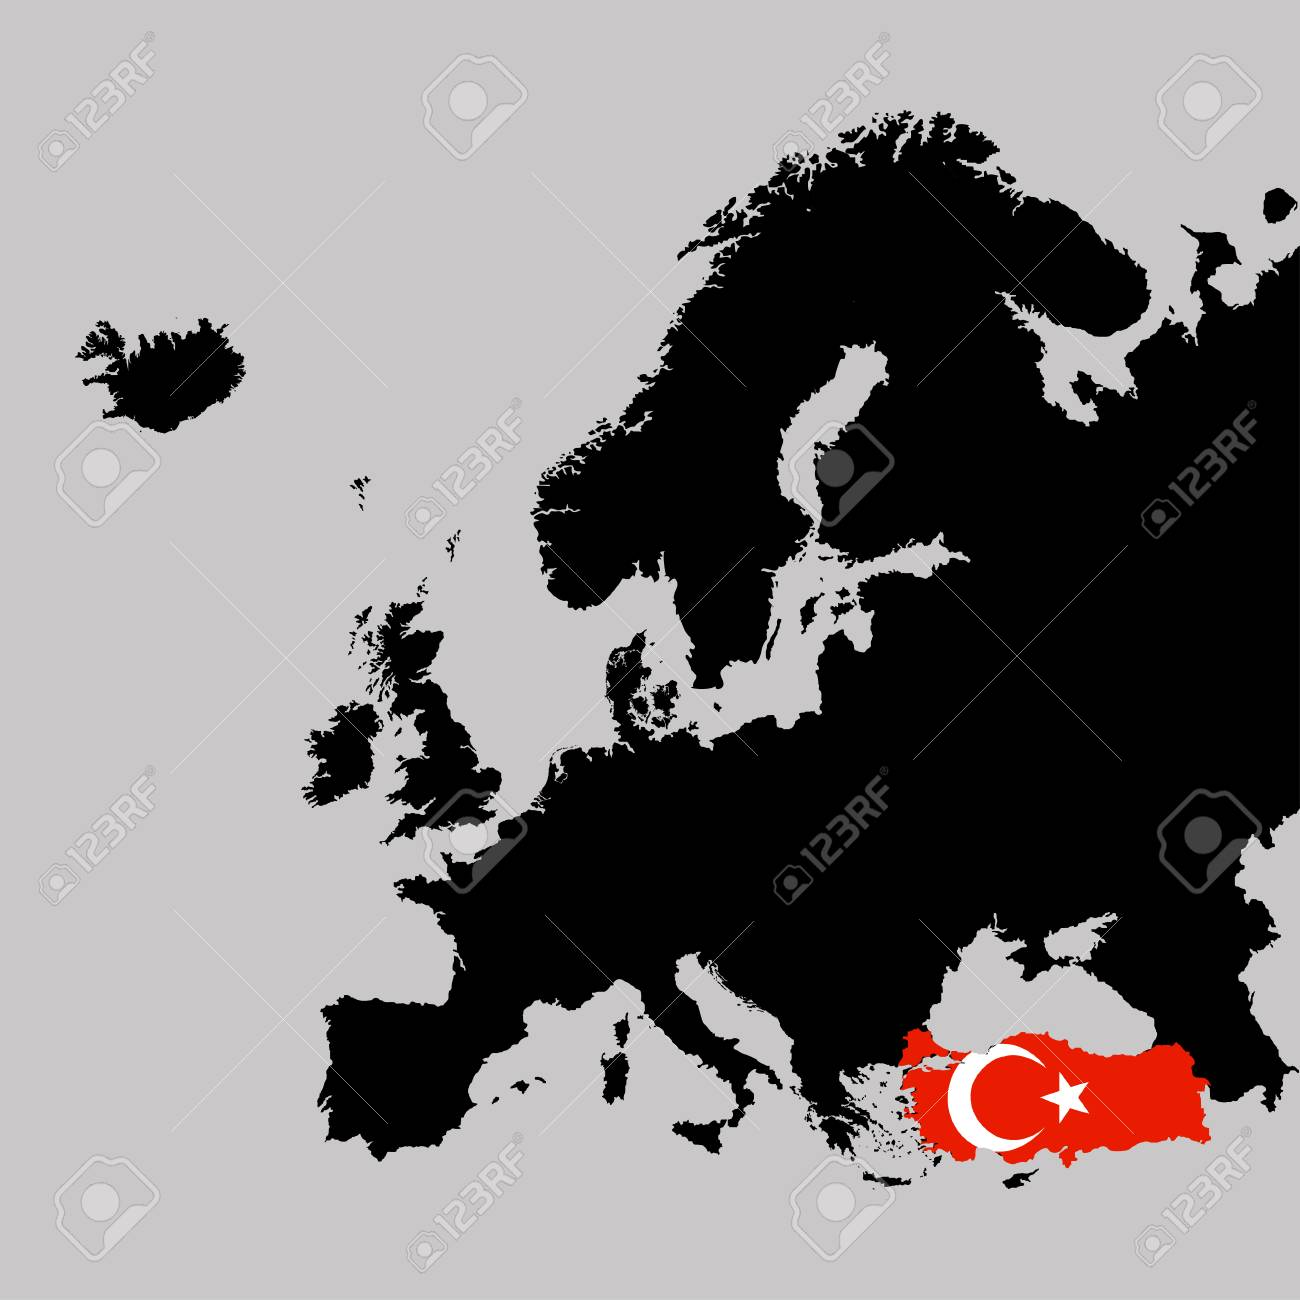 Turkey On Europe Map.Territory Of Turkey On Europe Map On A Grey Background Royalty Free